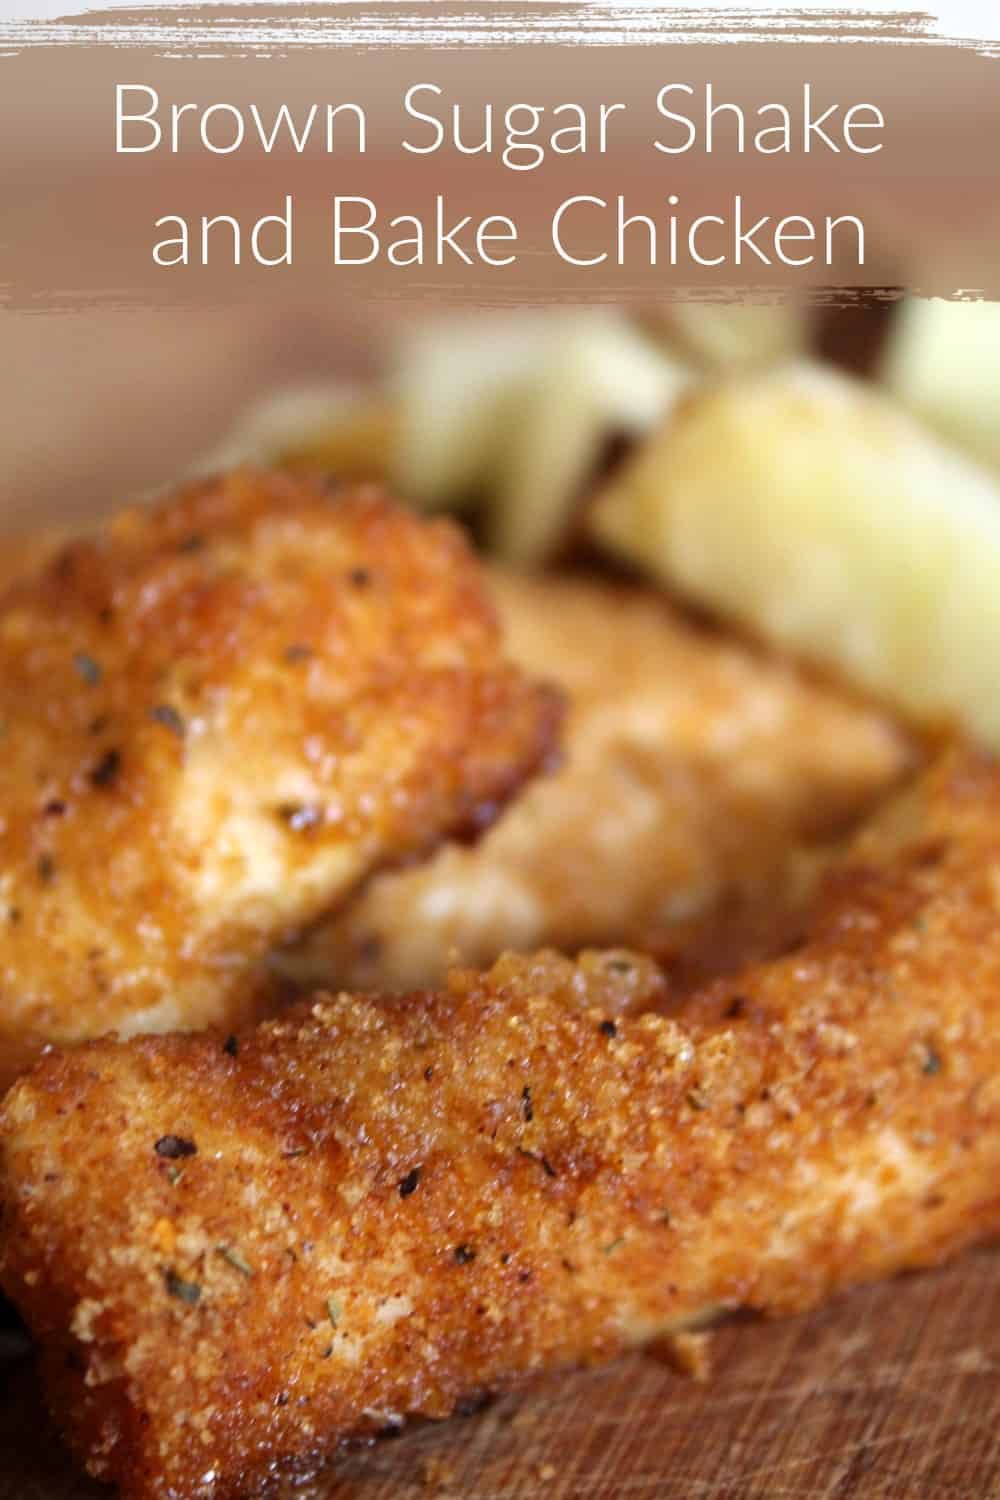 Finding an easy chicken recipe for moms isn't hard with this Brown Sugar Shake and Bake chicken nugget recipe that is sure to be a hit!